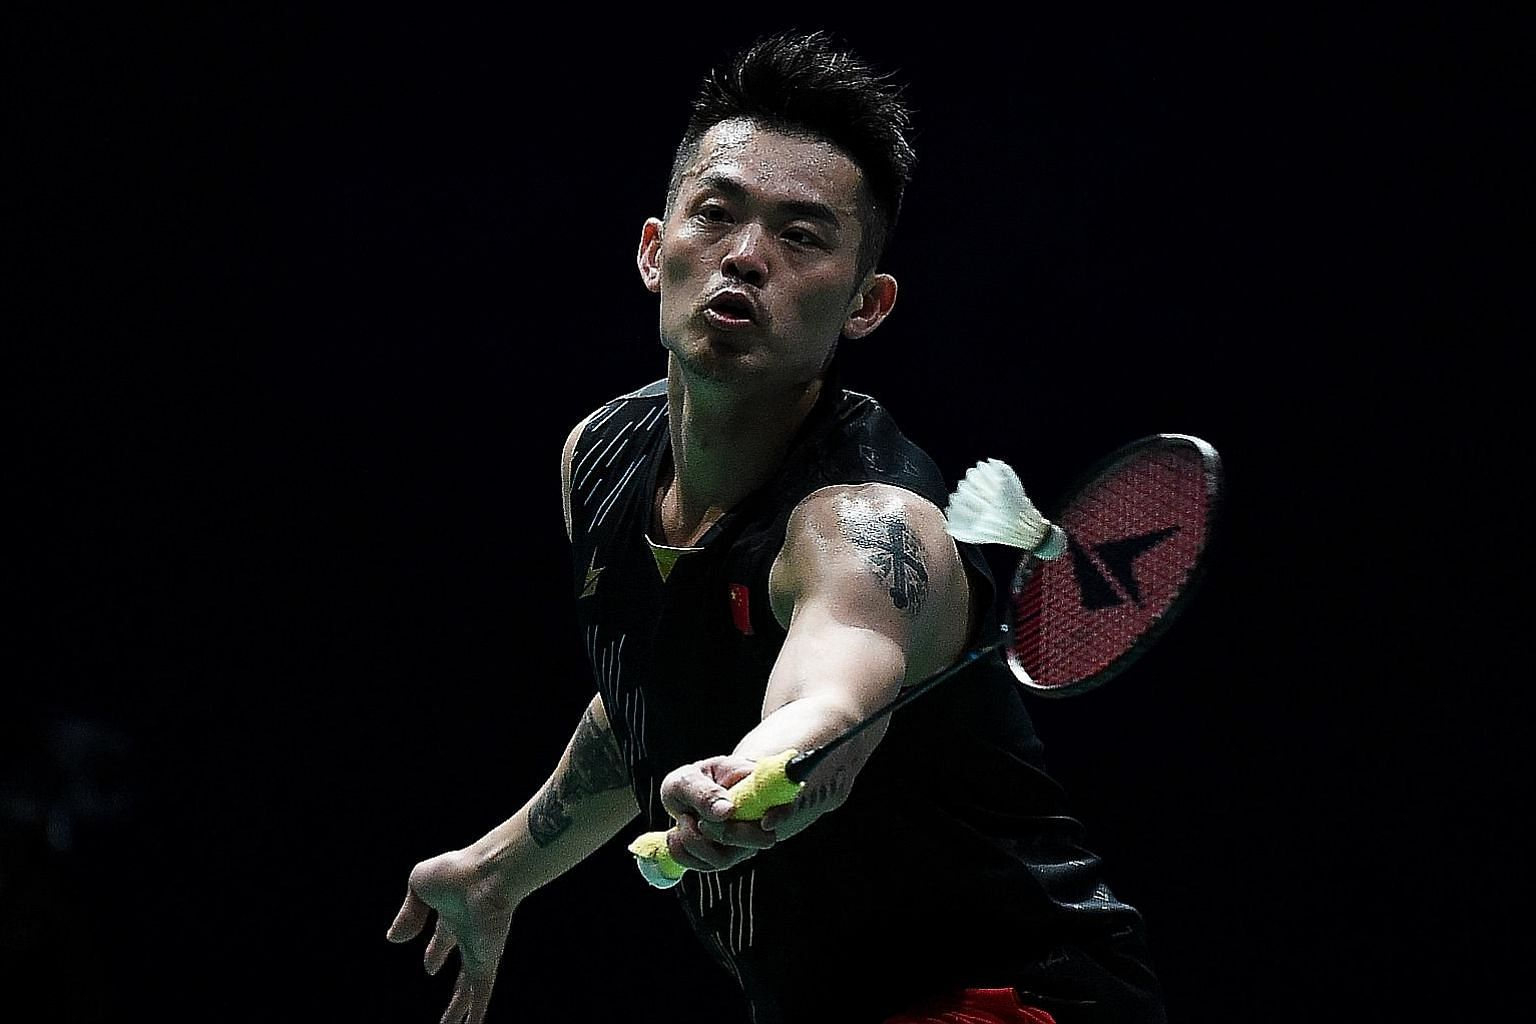 China's Lin Dan hitting a shot against compatriot Chen Long in the men's singles final of the Malaysia Open yesterday. His last victory came at the same tournament in 2017.